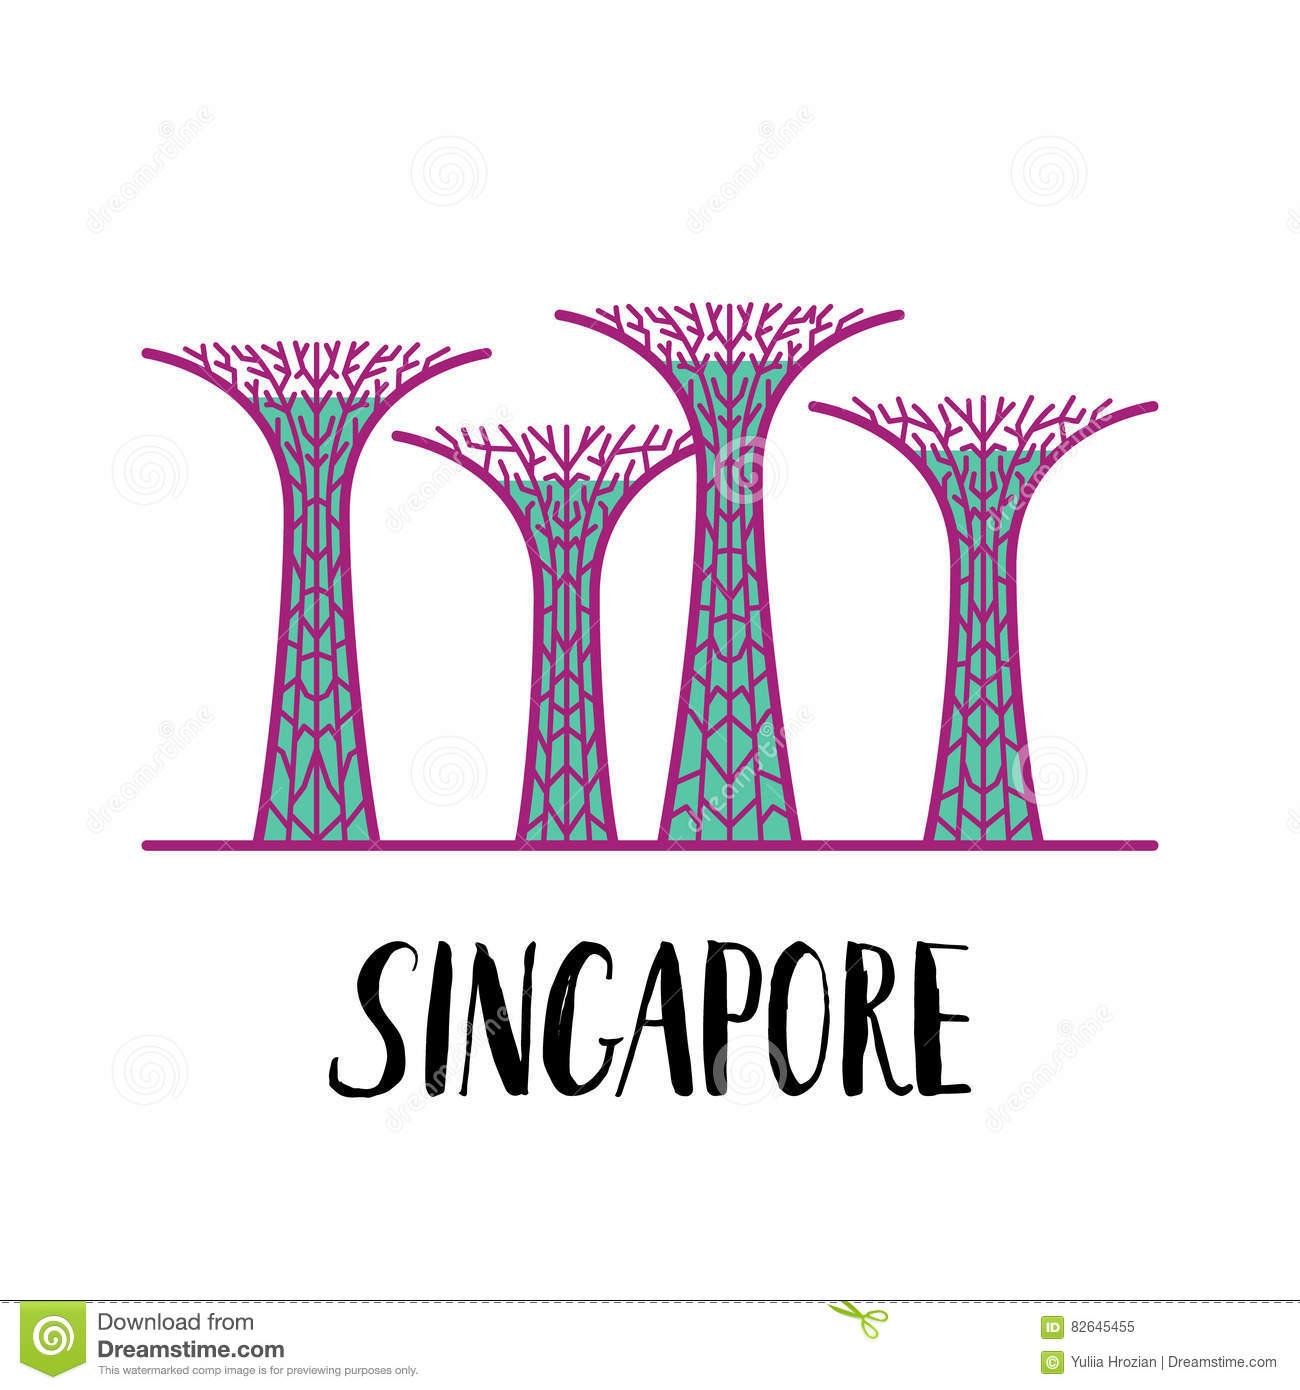 Famous singapore landmark gardens by the bay with modern